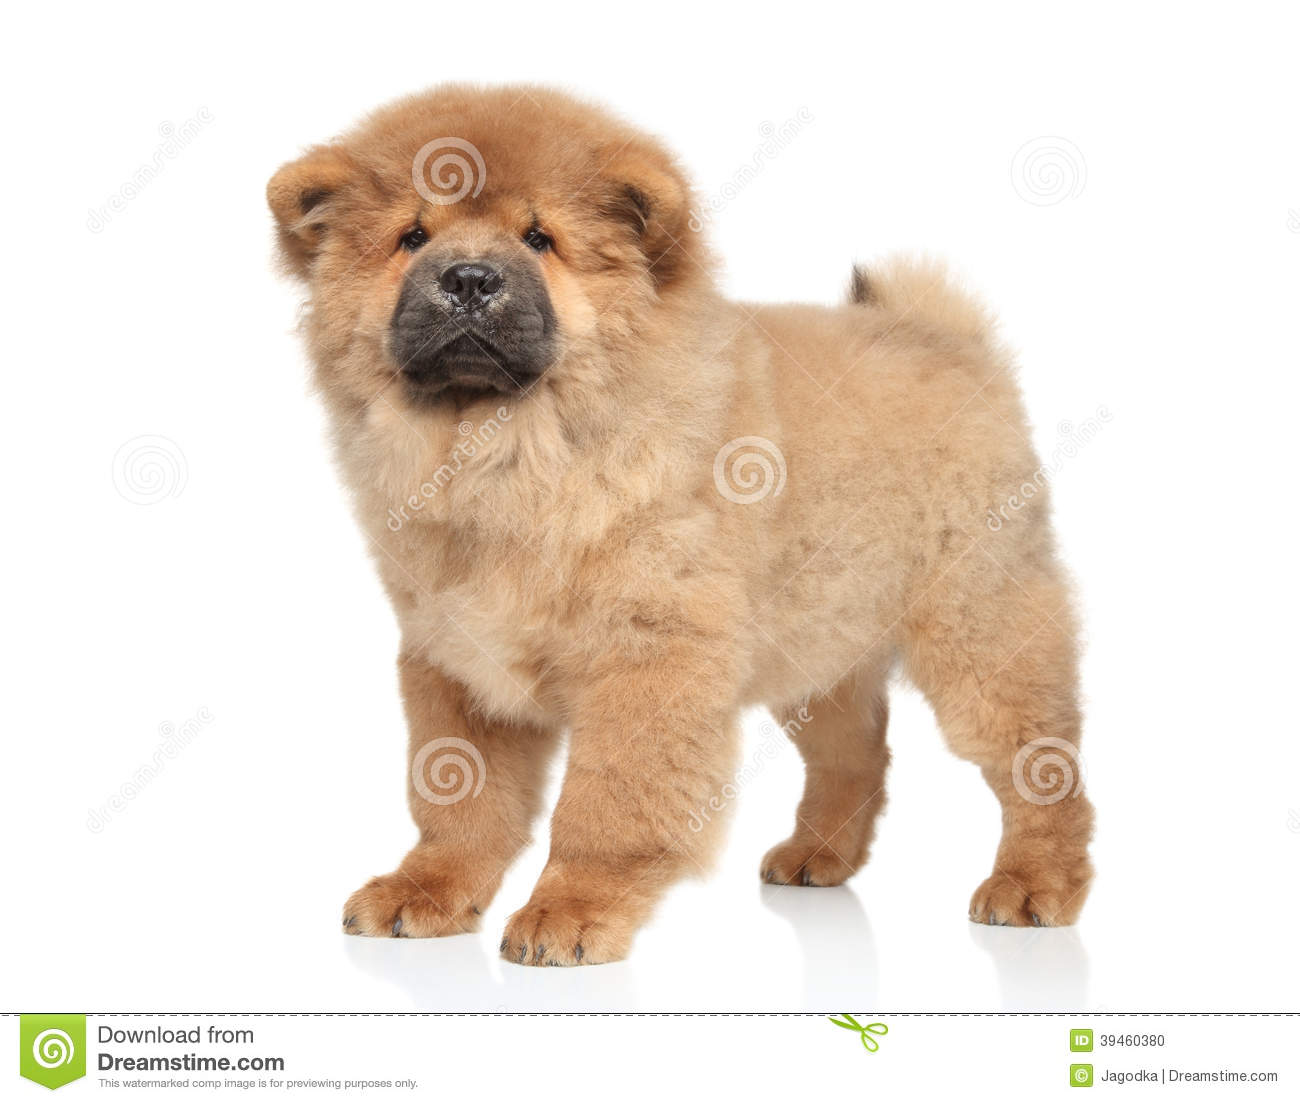 Chow chow puppy stock photo  Image of studio, china, furry